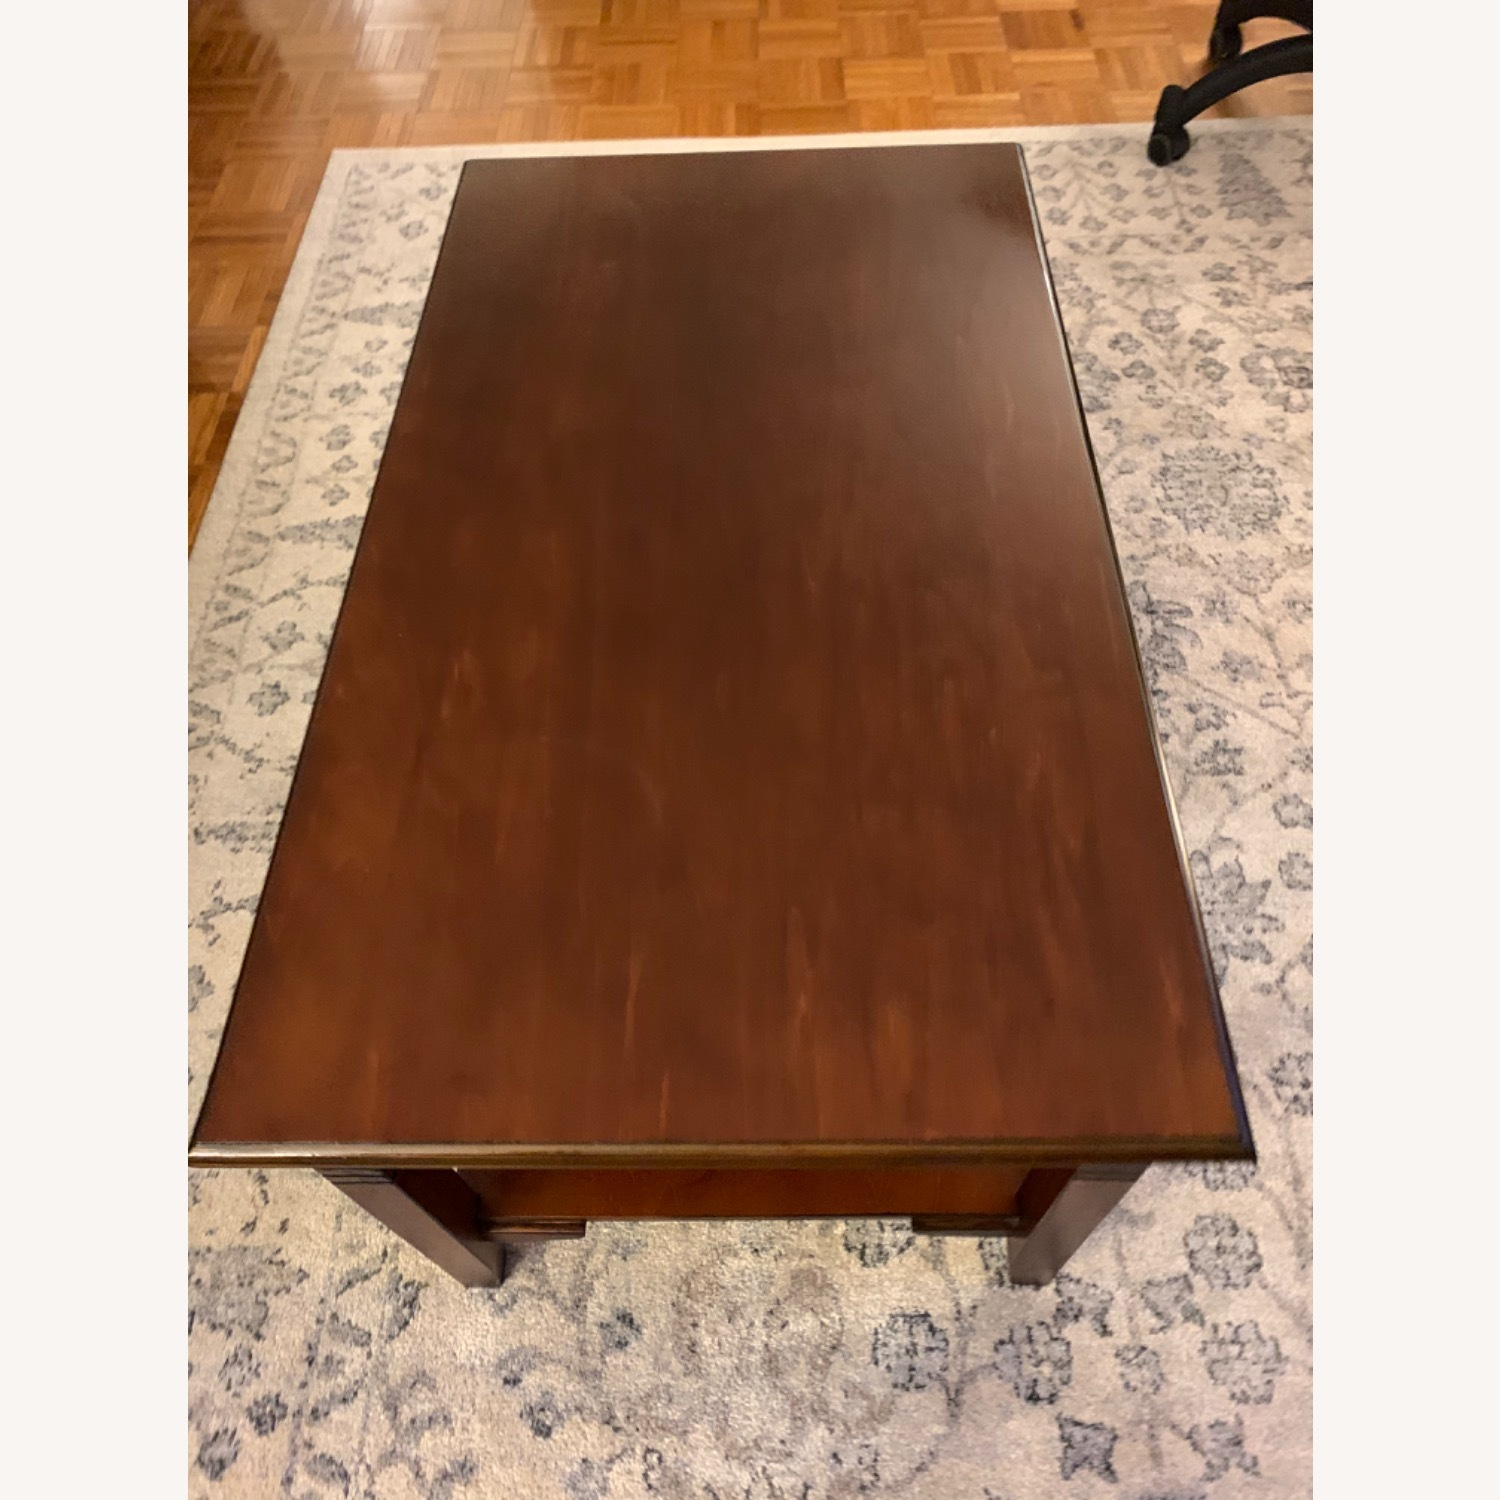 Wayfair Espresso Coffee Table - image-1